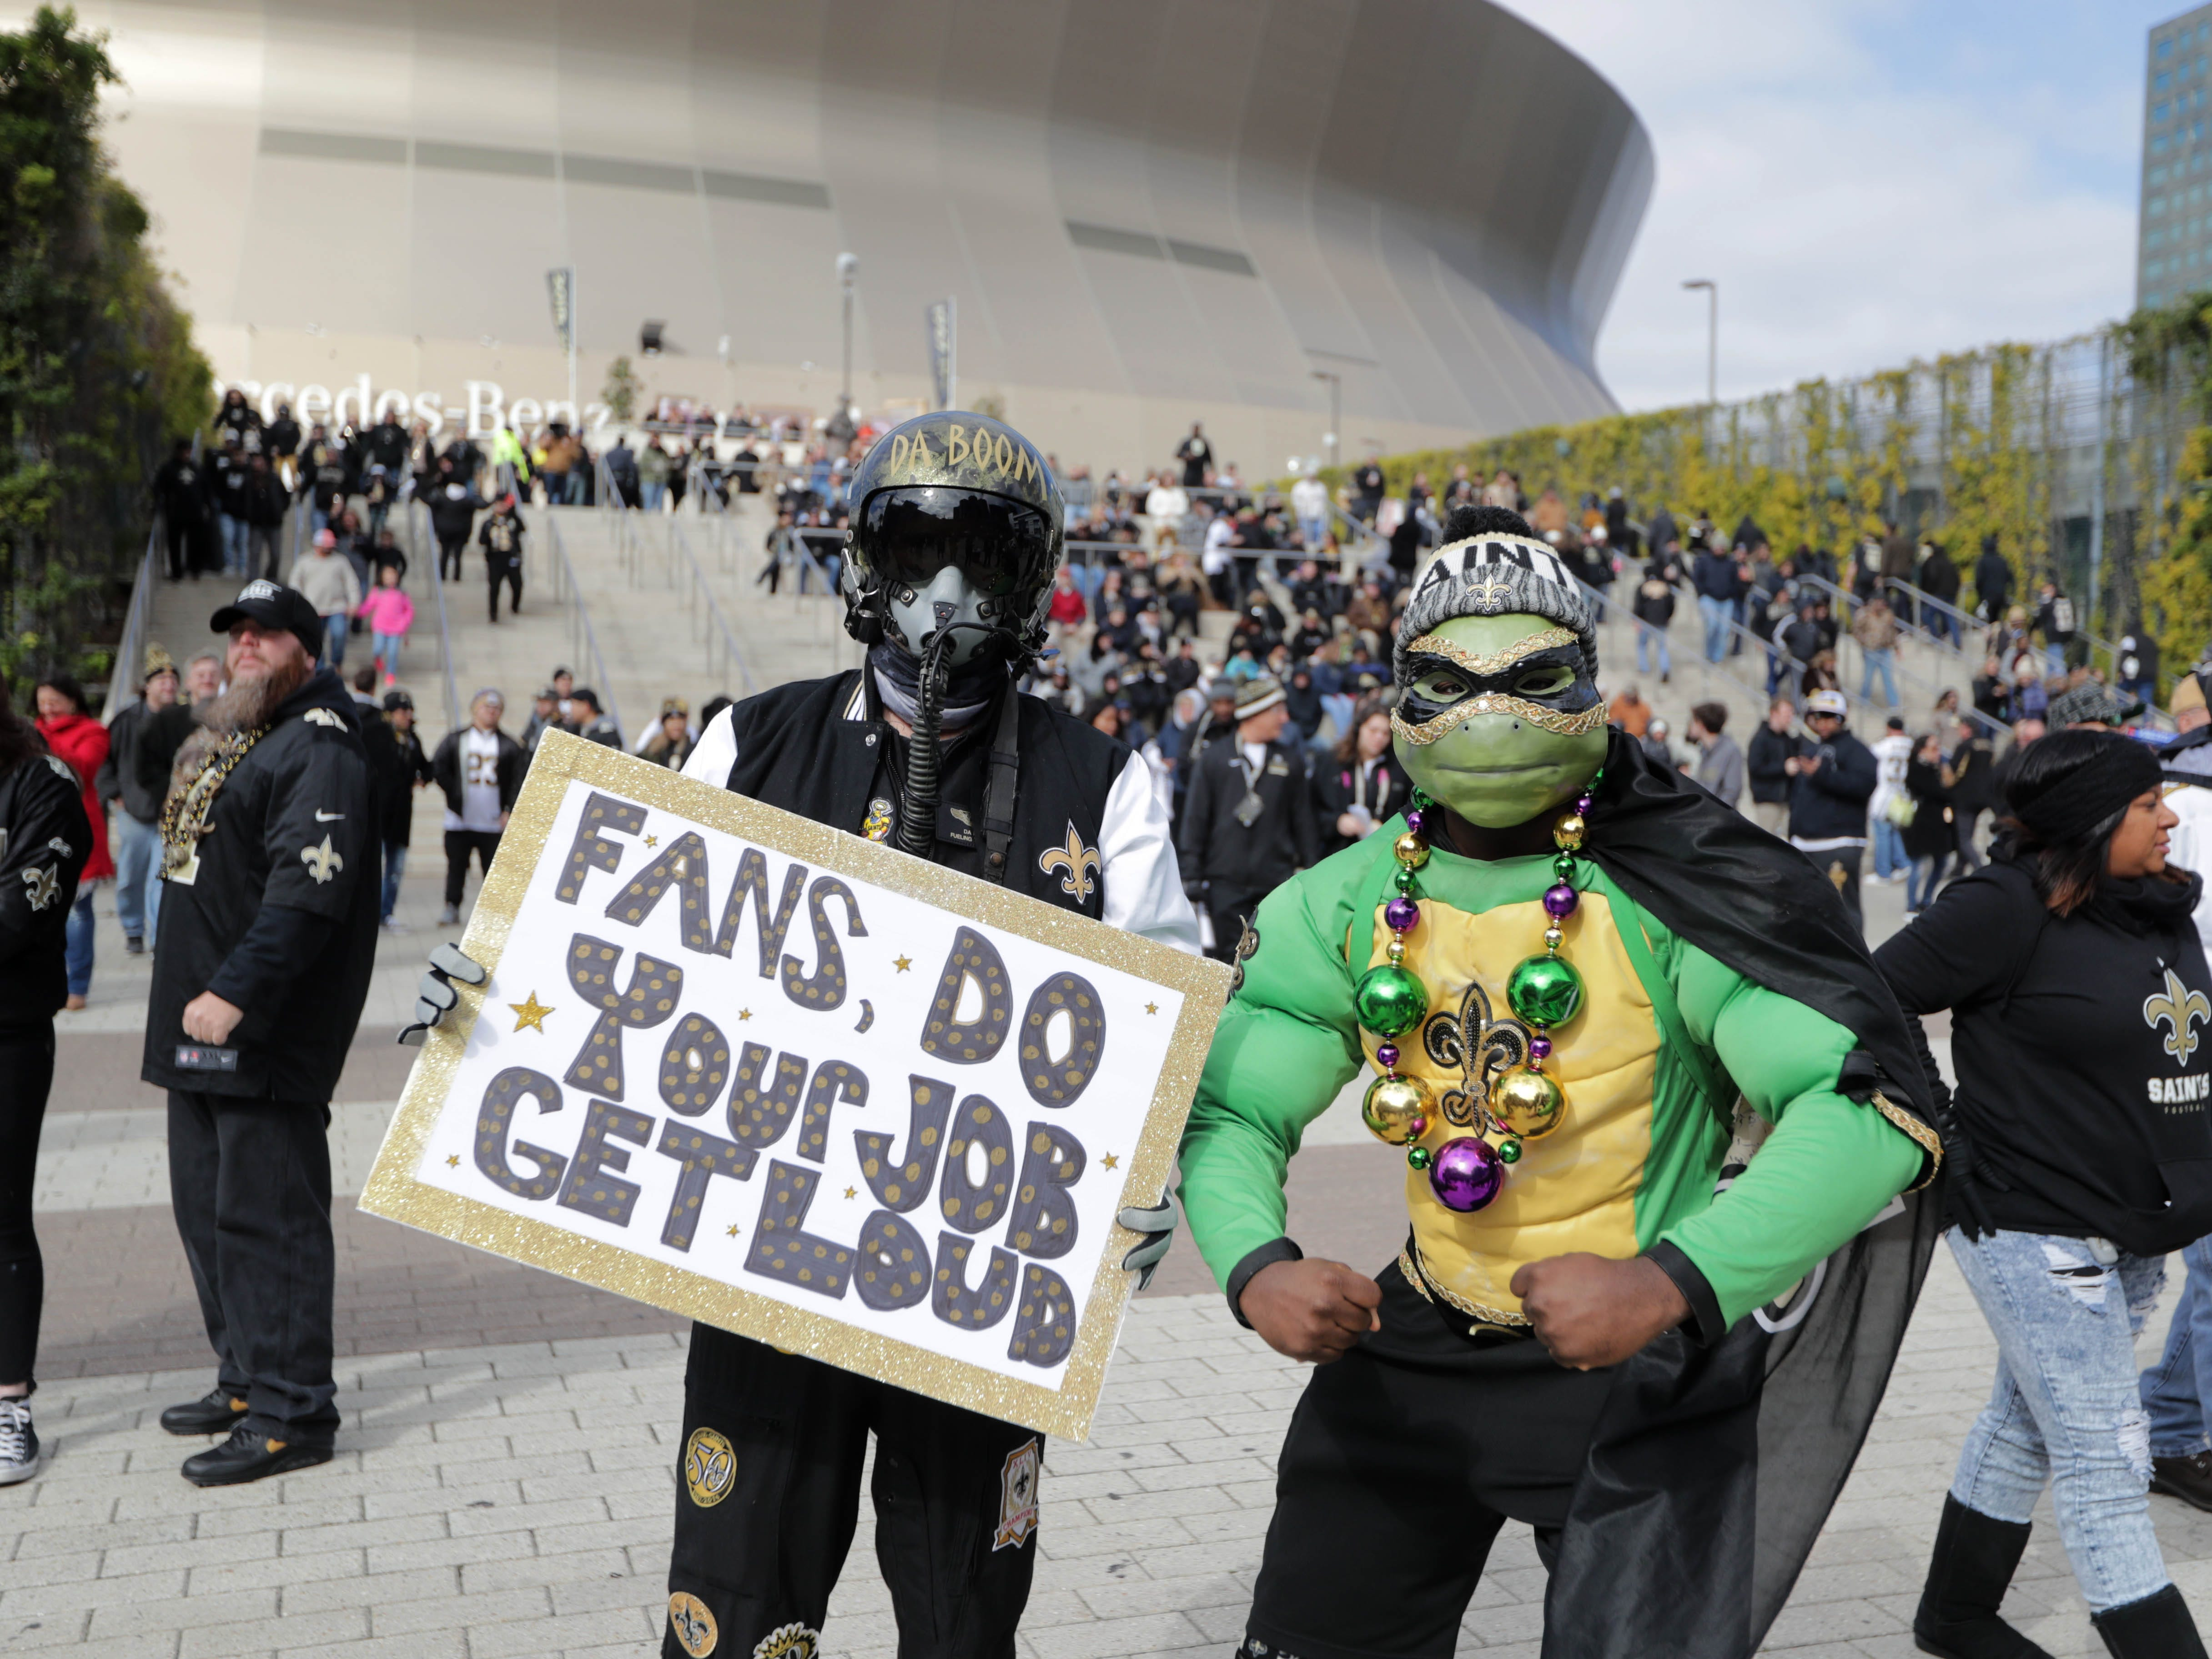 New Orleans Saints fans pose outside the Mercedes-Benz Superdome before the NFC Championship game between the Saints and the Los Angeles Rams.